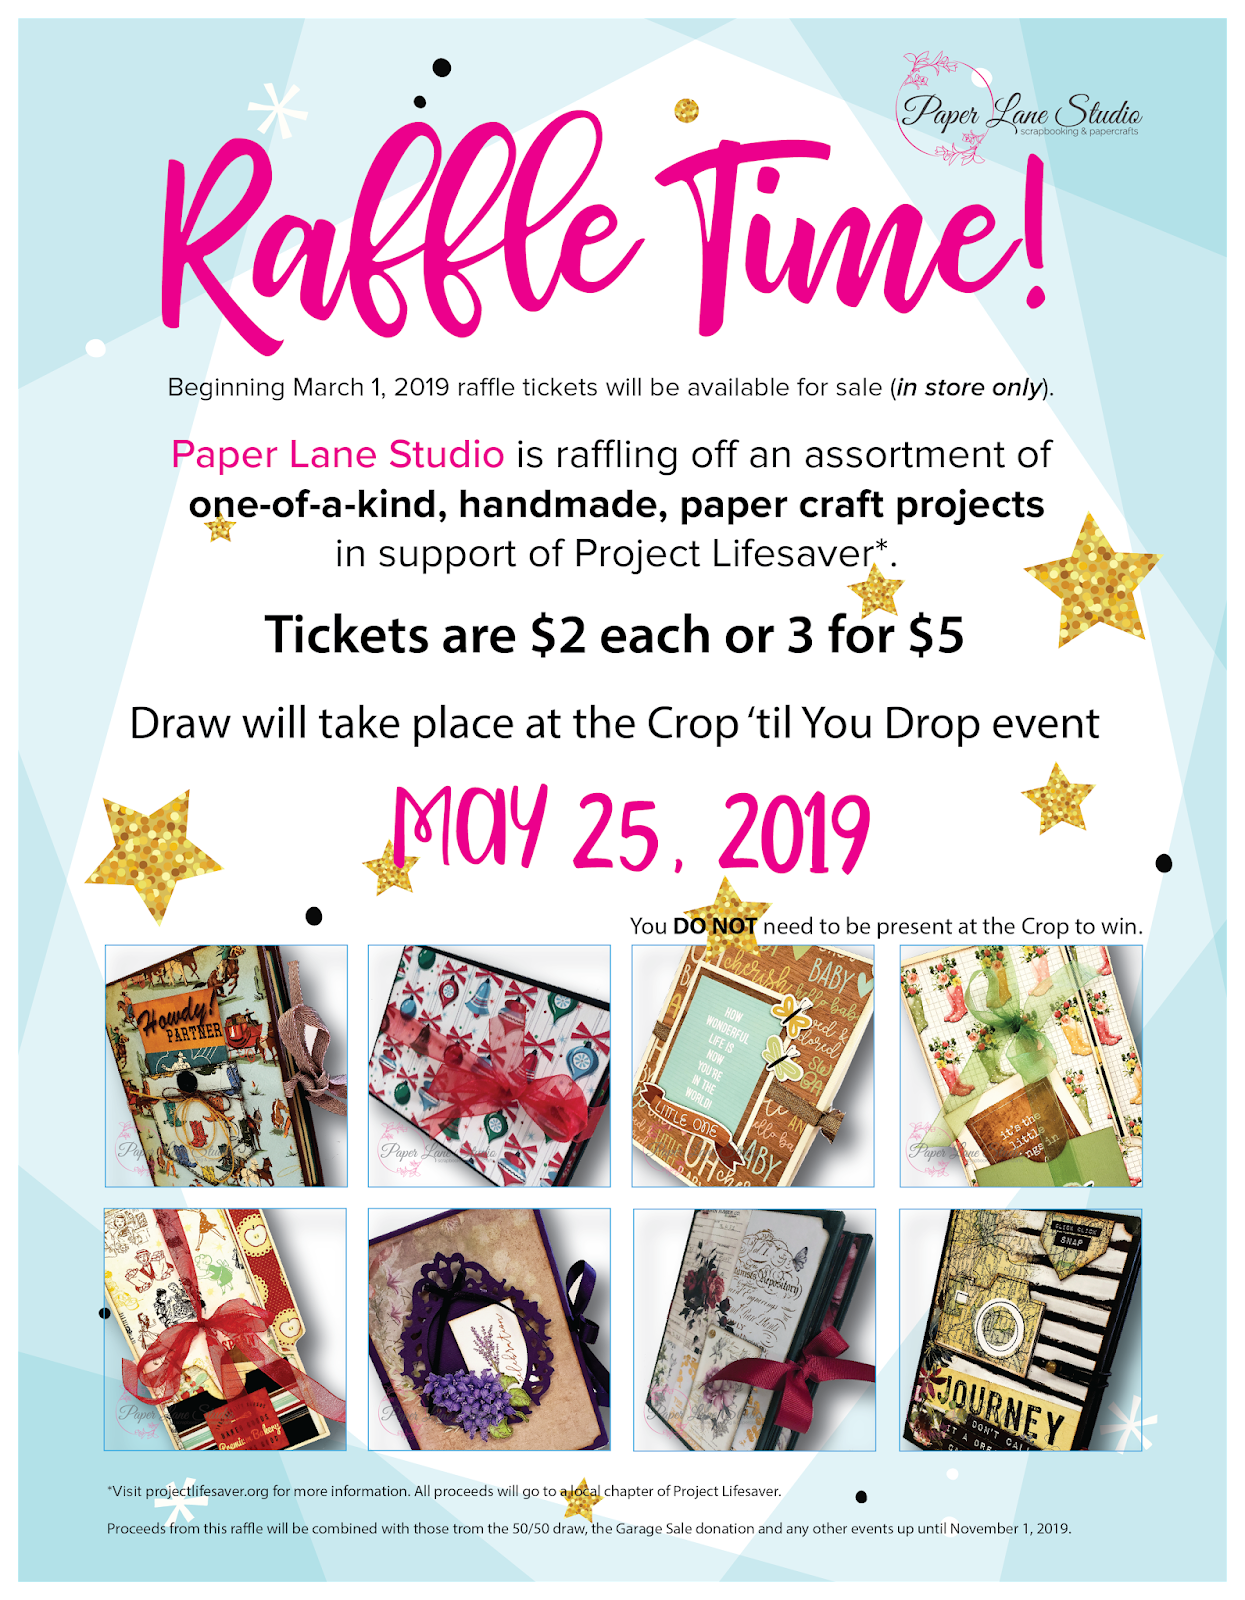 Paper Lane Studio: Charity Raffle and Information for